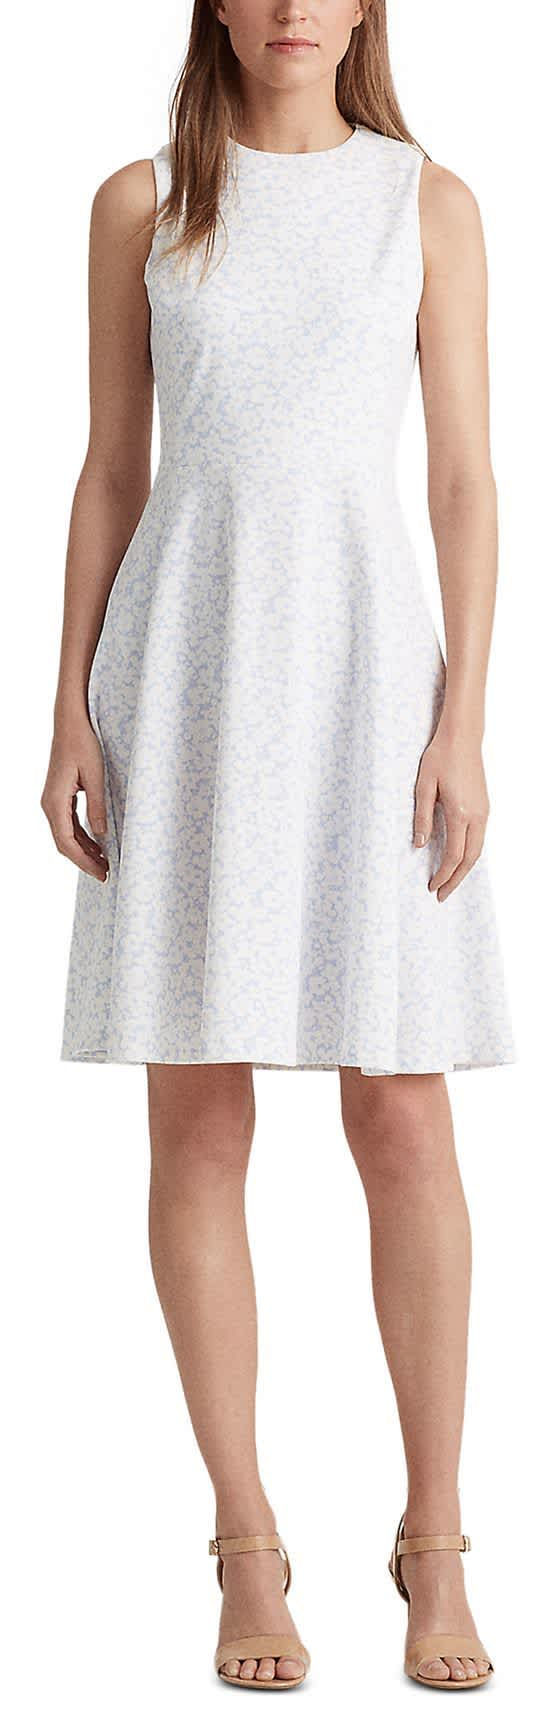 Lauren Ralph Lauren Women's Floral Fit-and-Flare Dress